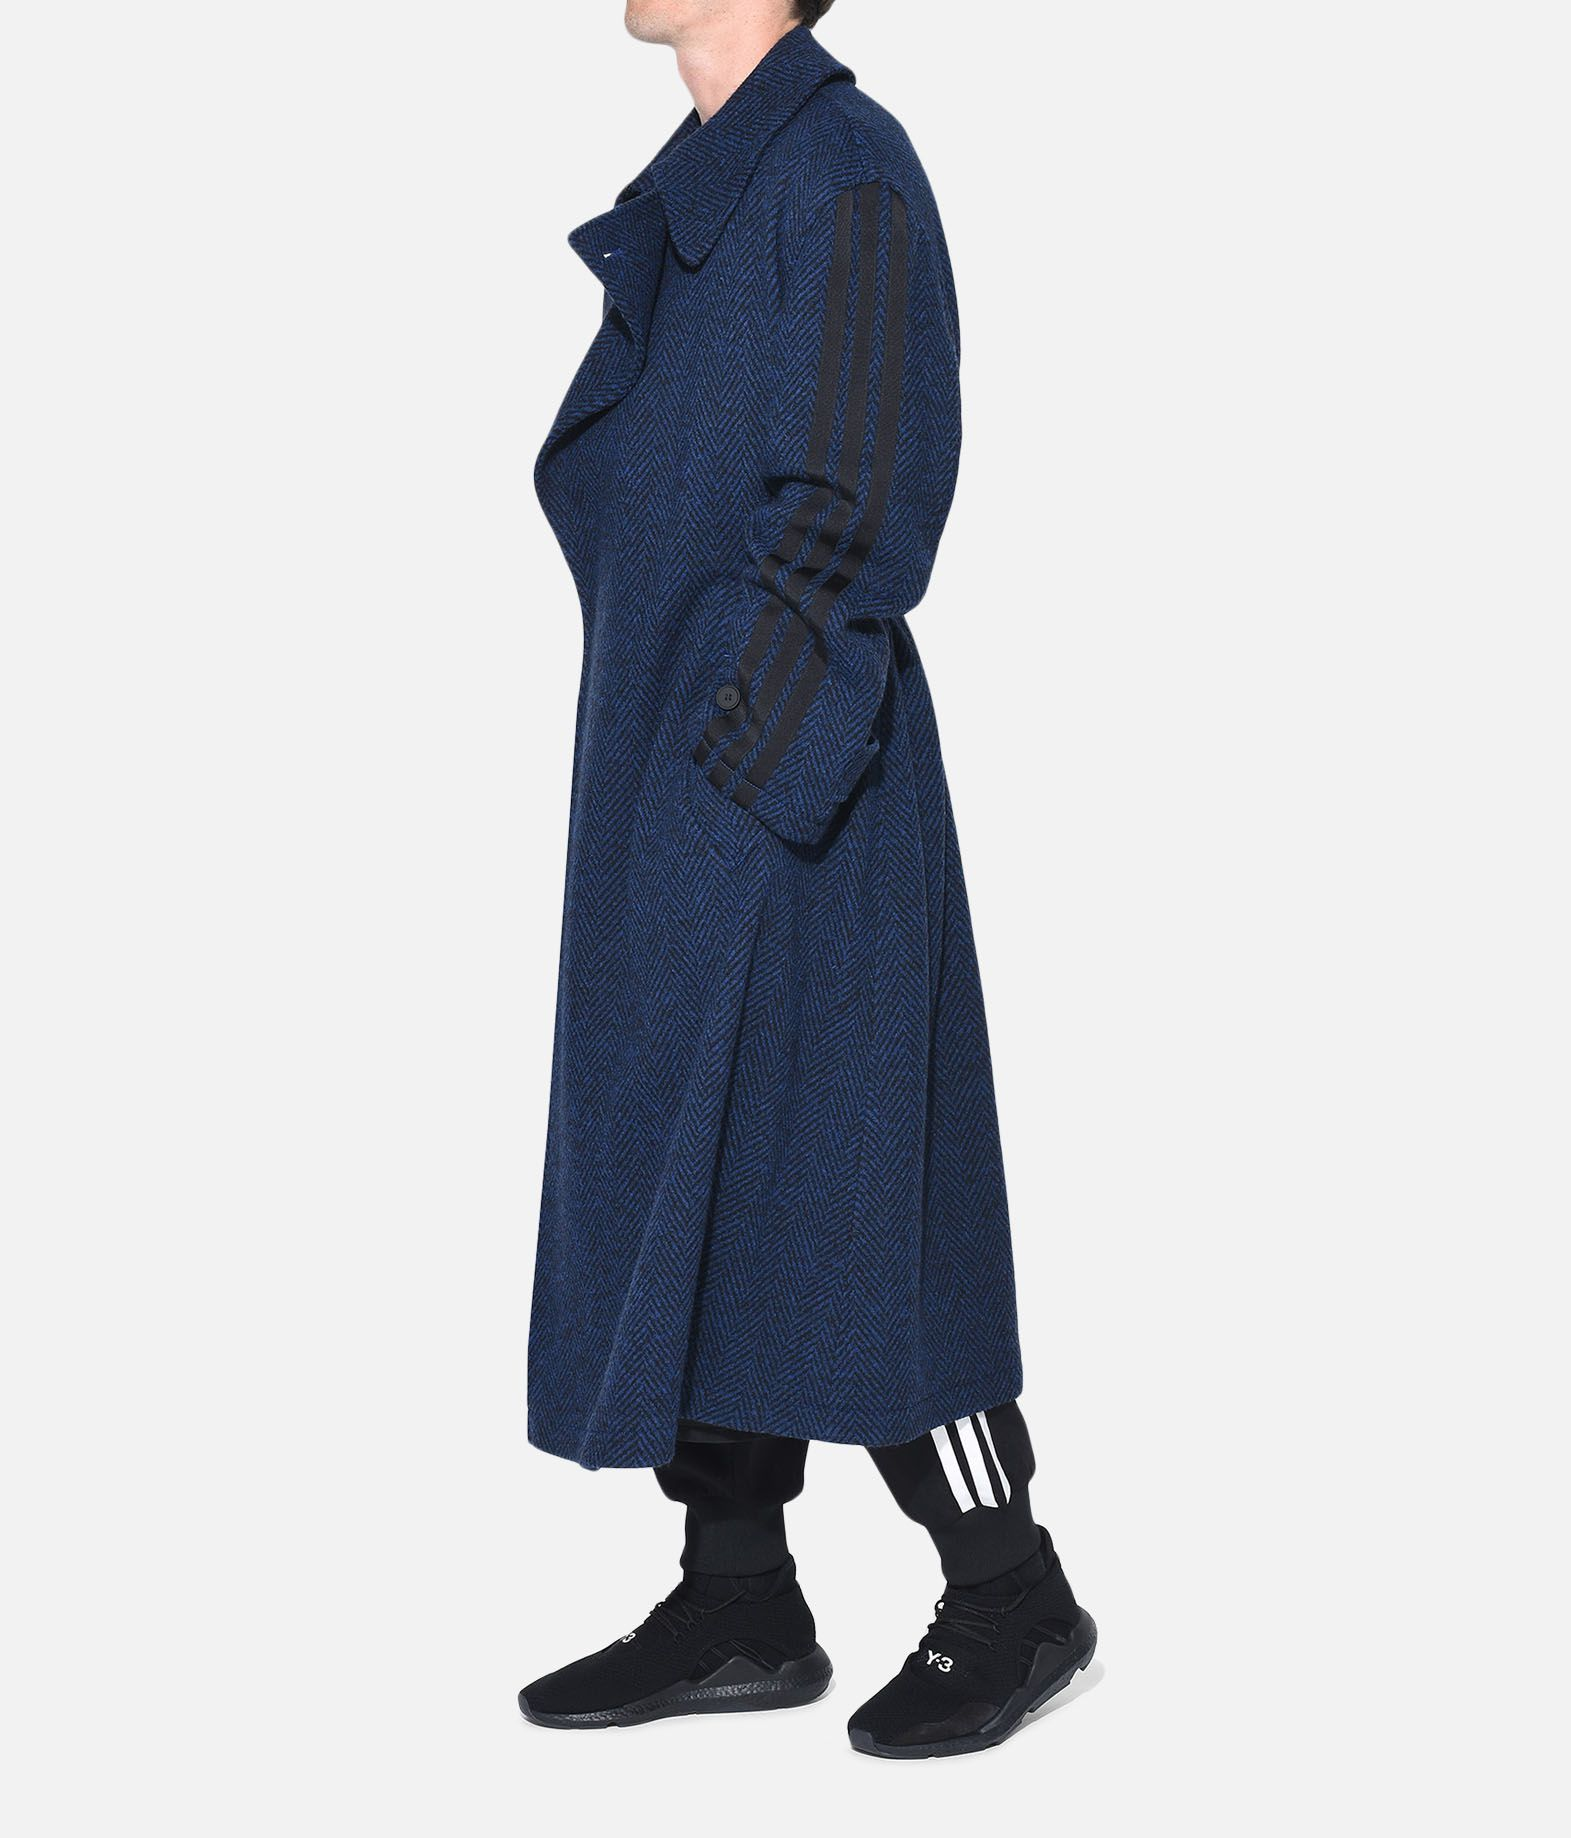 Y-3 Y-3 Tailored Wool Coat コート メンズ a